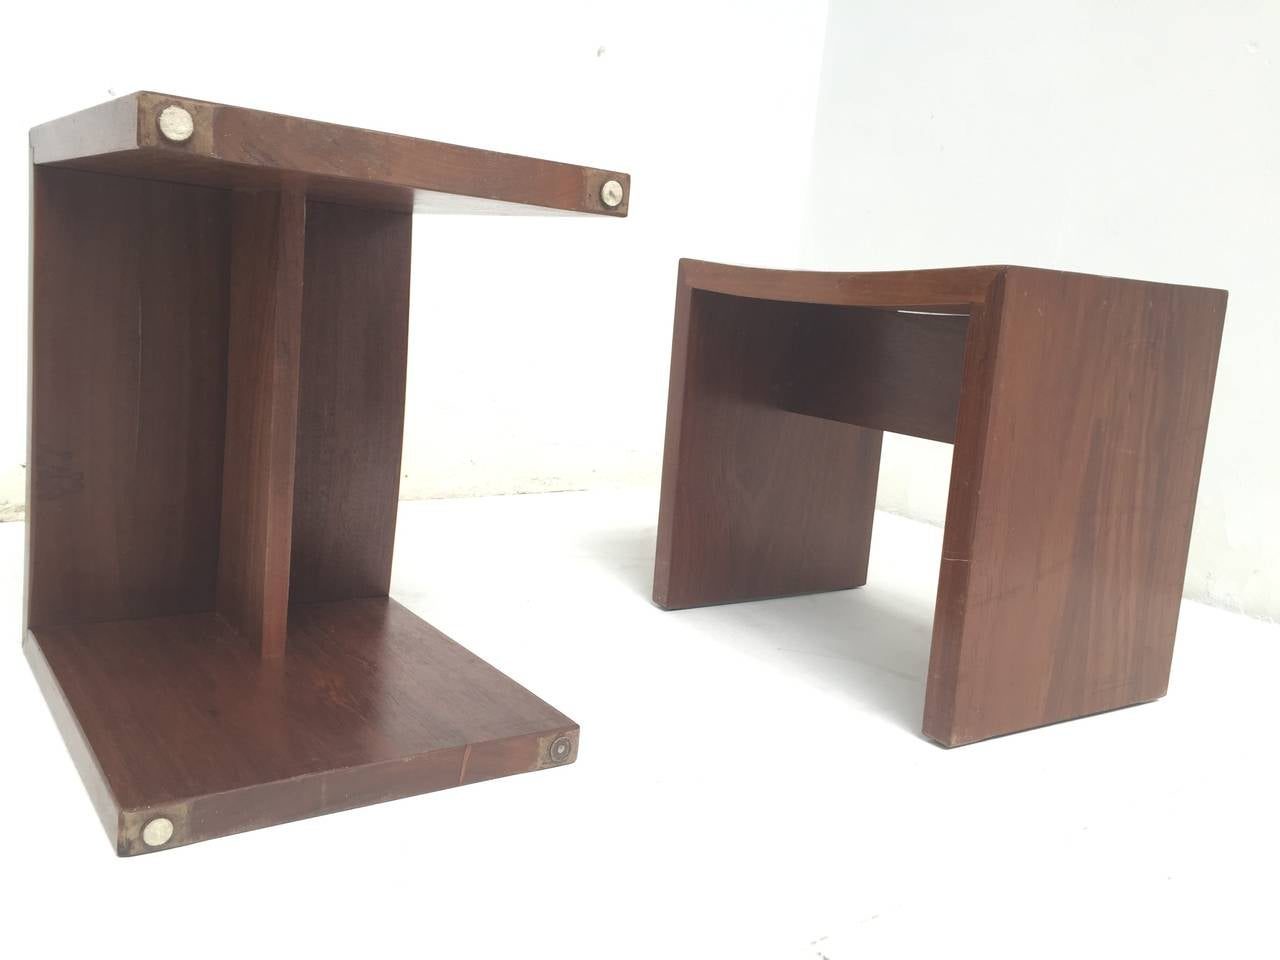 Unique Set of Solid Mahogany Church Seats by Dutch Architect Harry Nefkens, 1963 For Sale 2